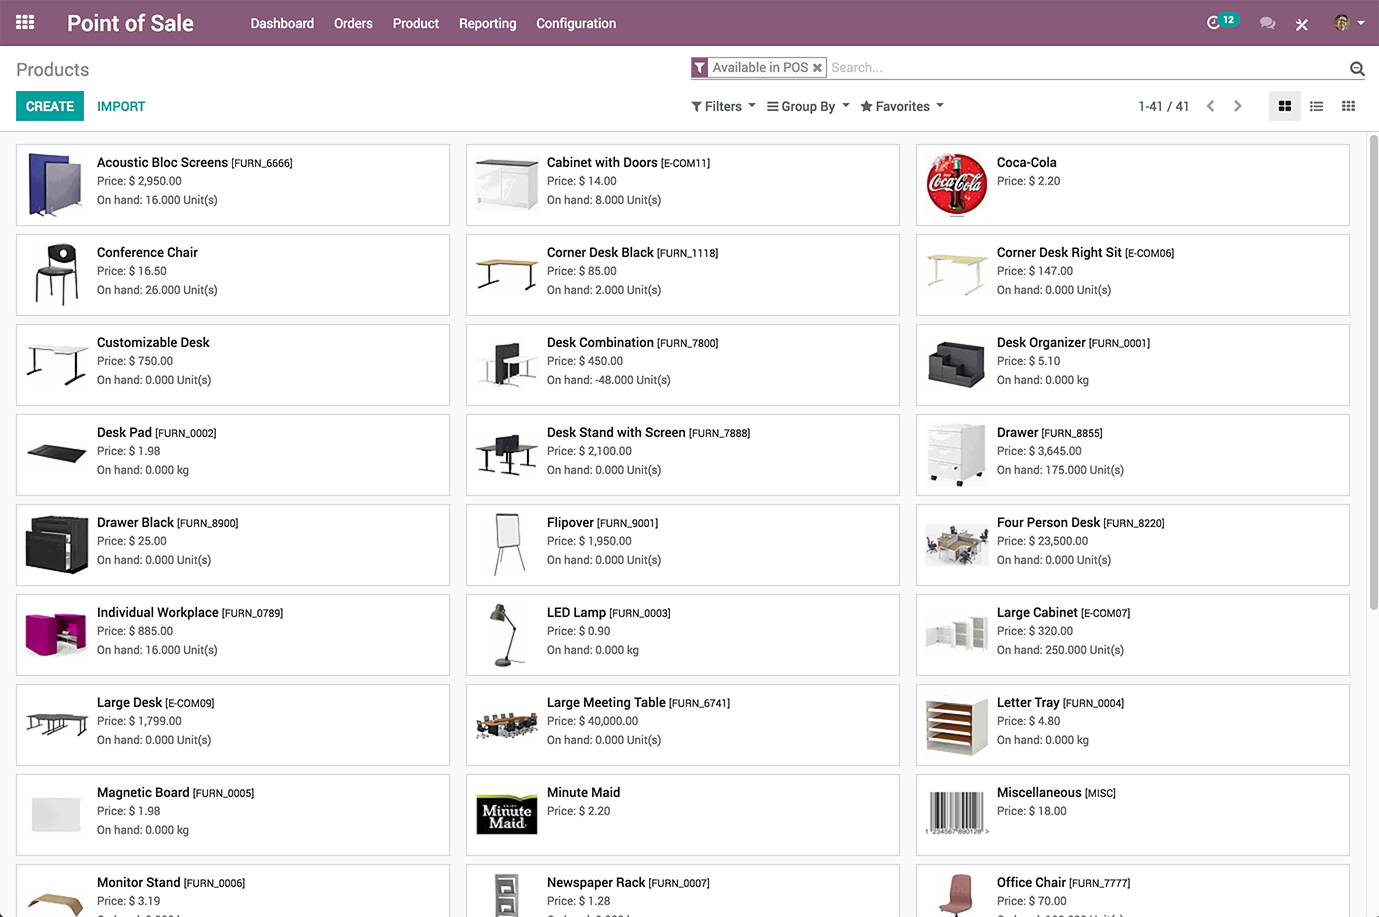 Odoo Point of Sale Demo - Odoo POS Products